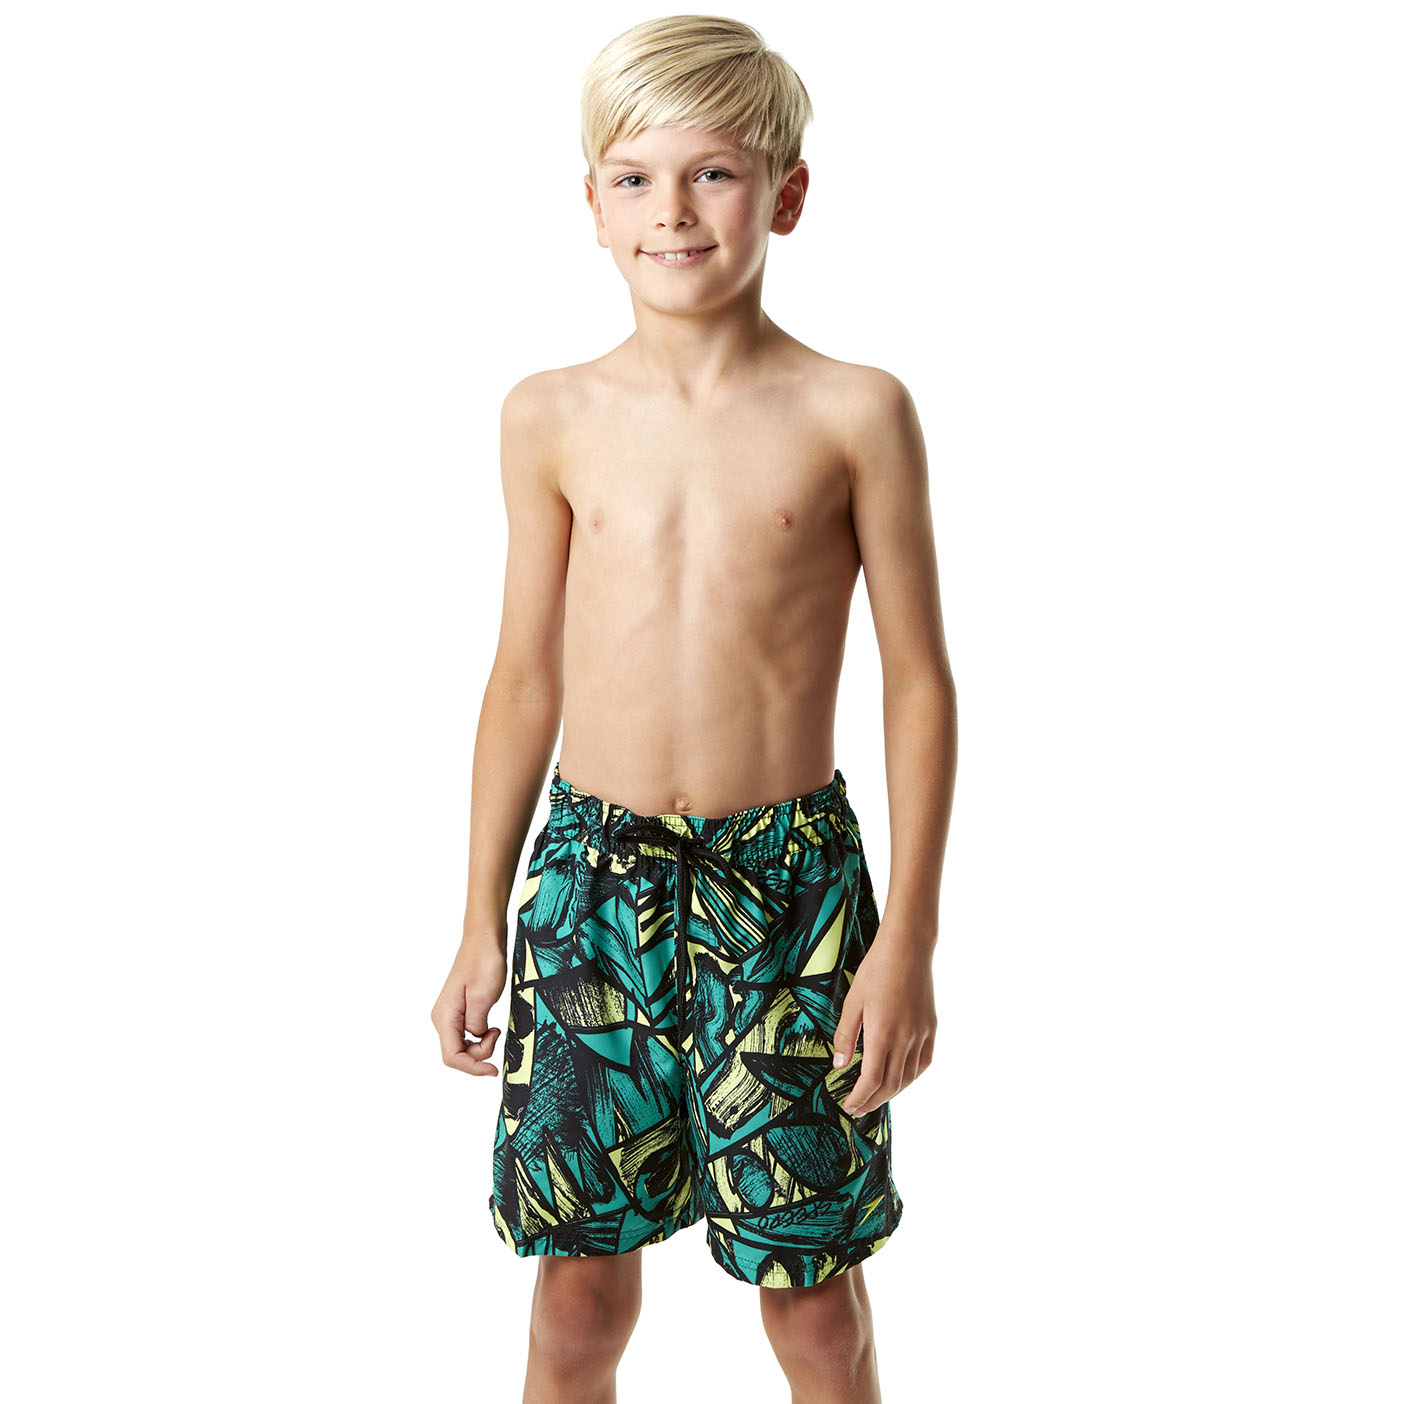 Speedo Printed Leisure 15 Inch Boys Watershorts - Black/Green, L